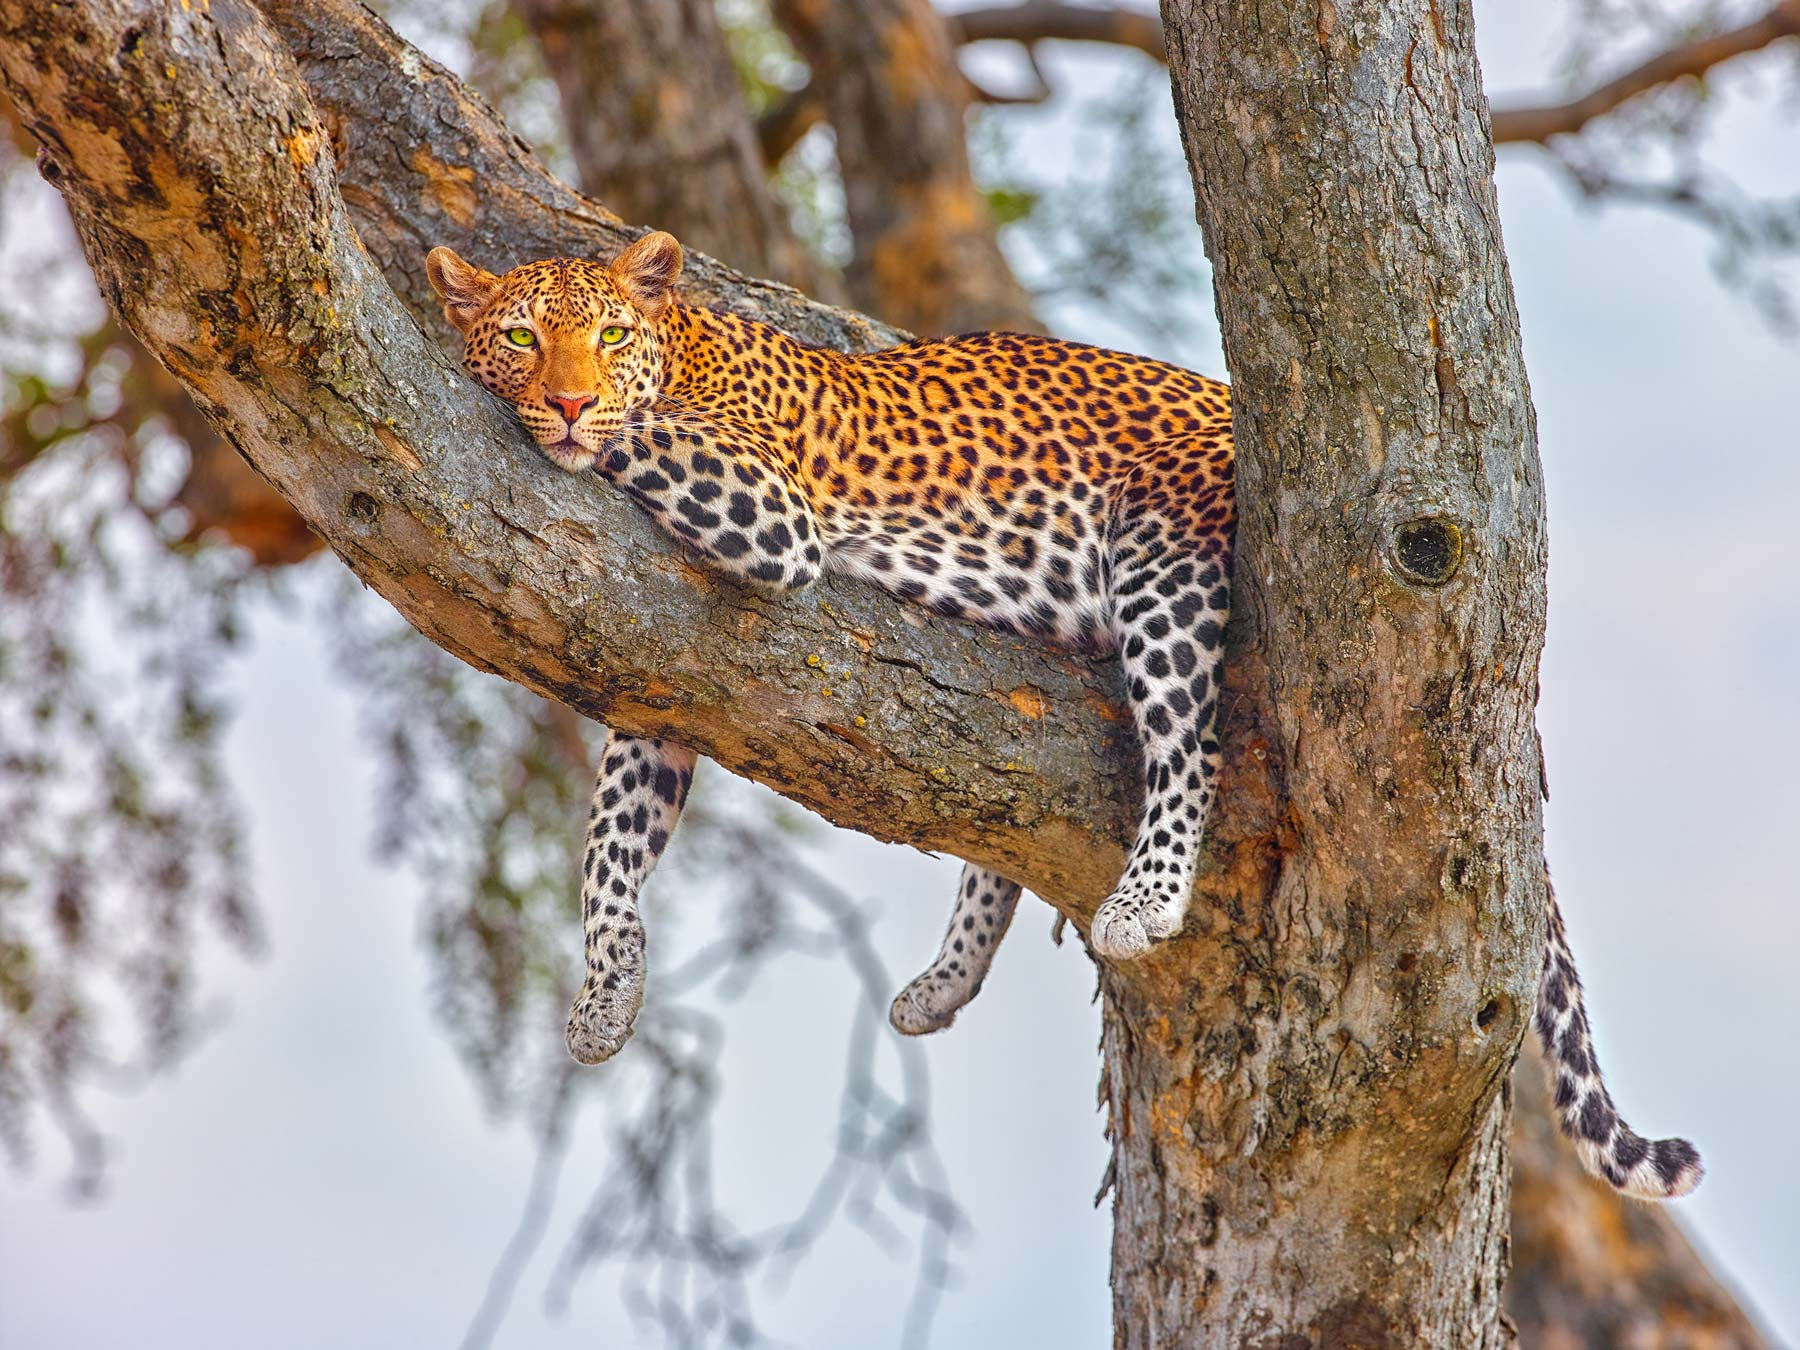 Leopard in a tree, Botswana, Africa.